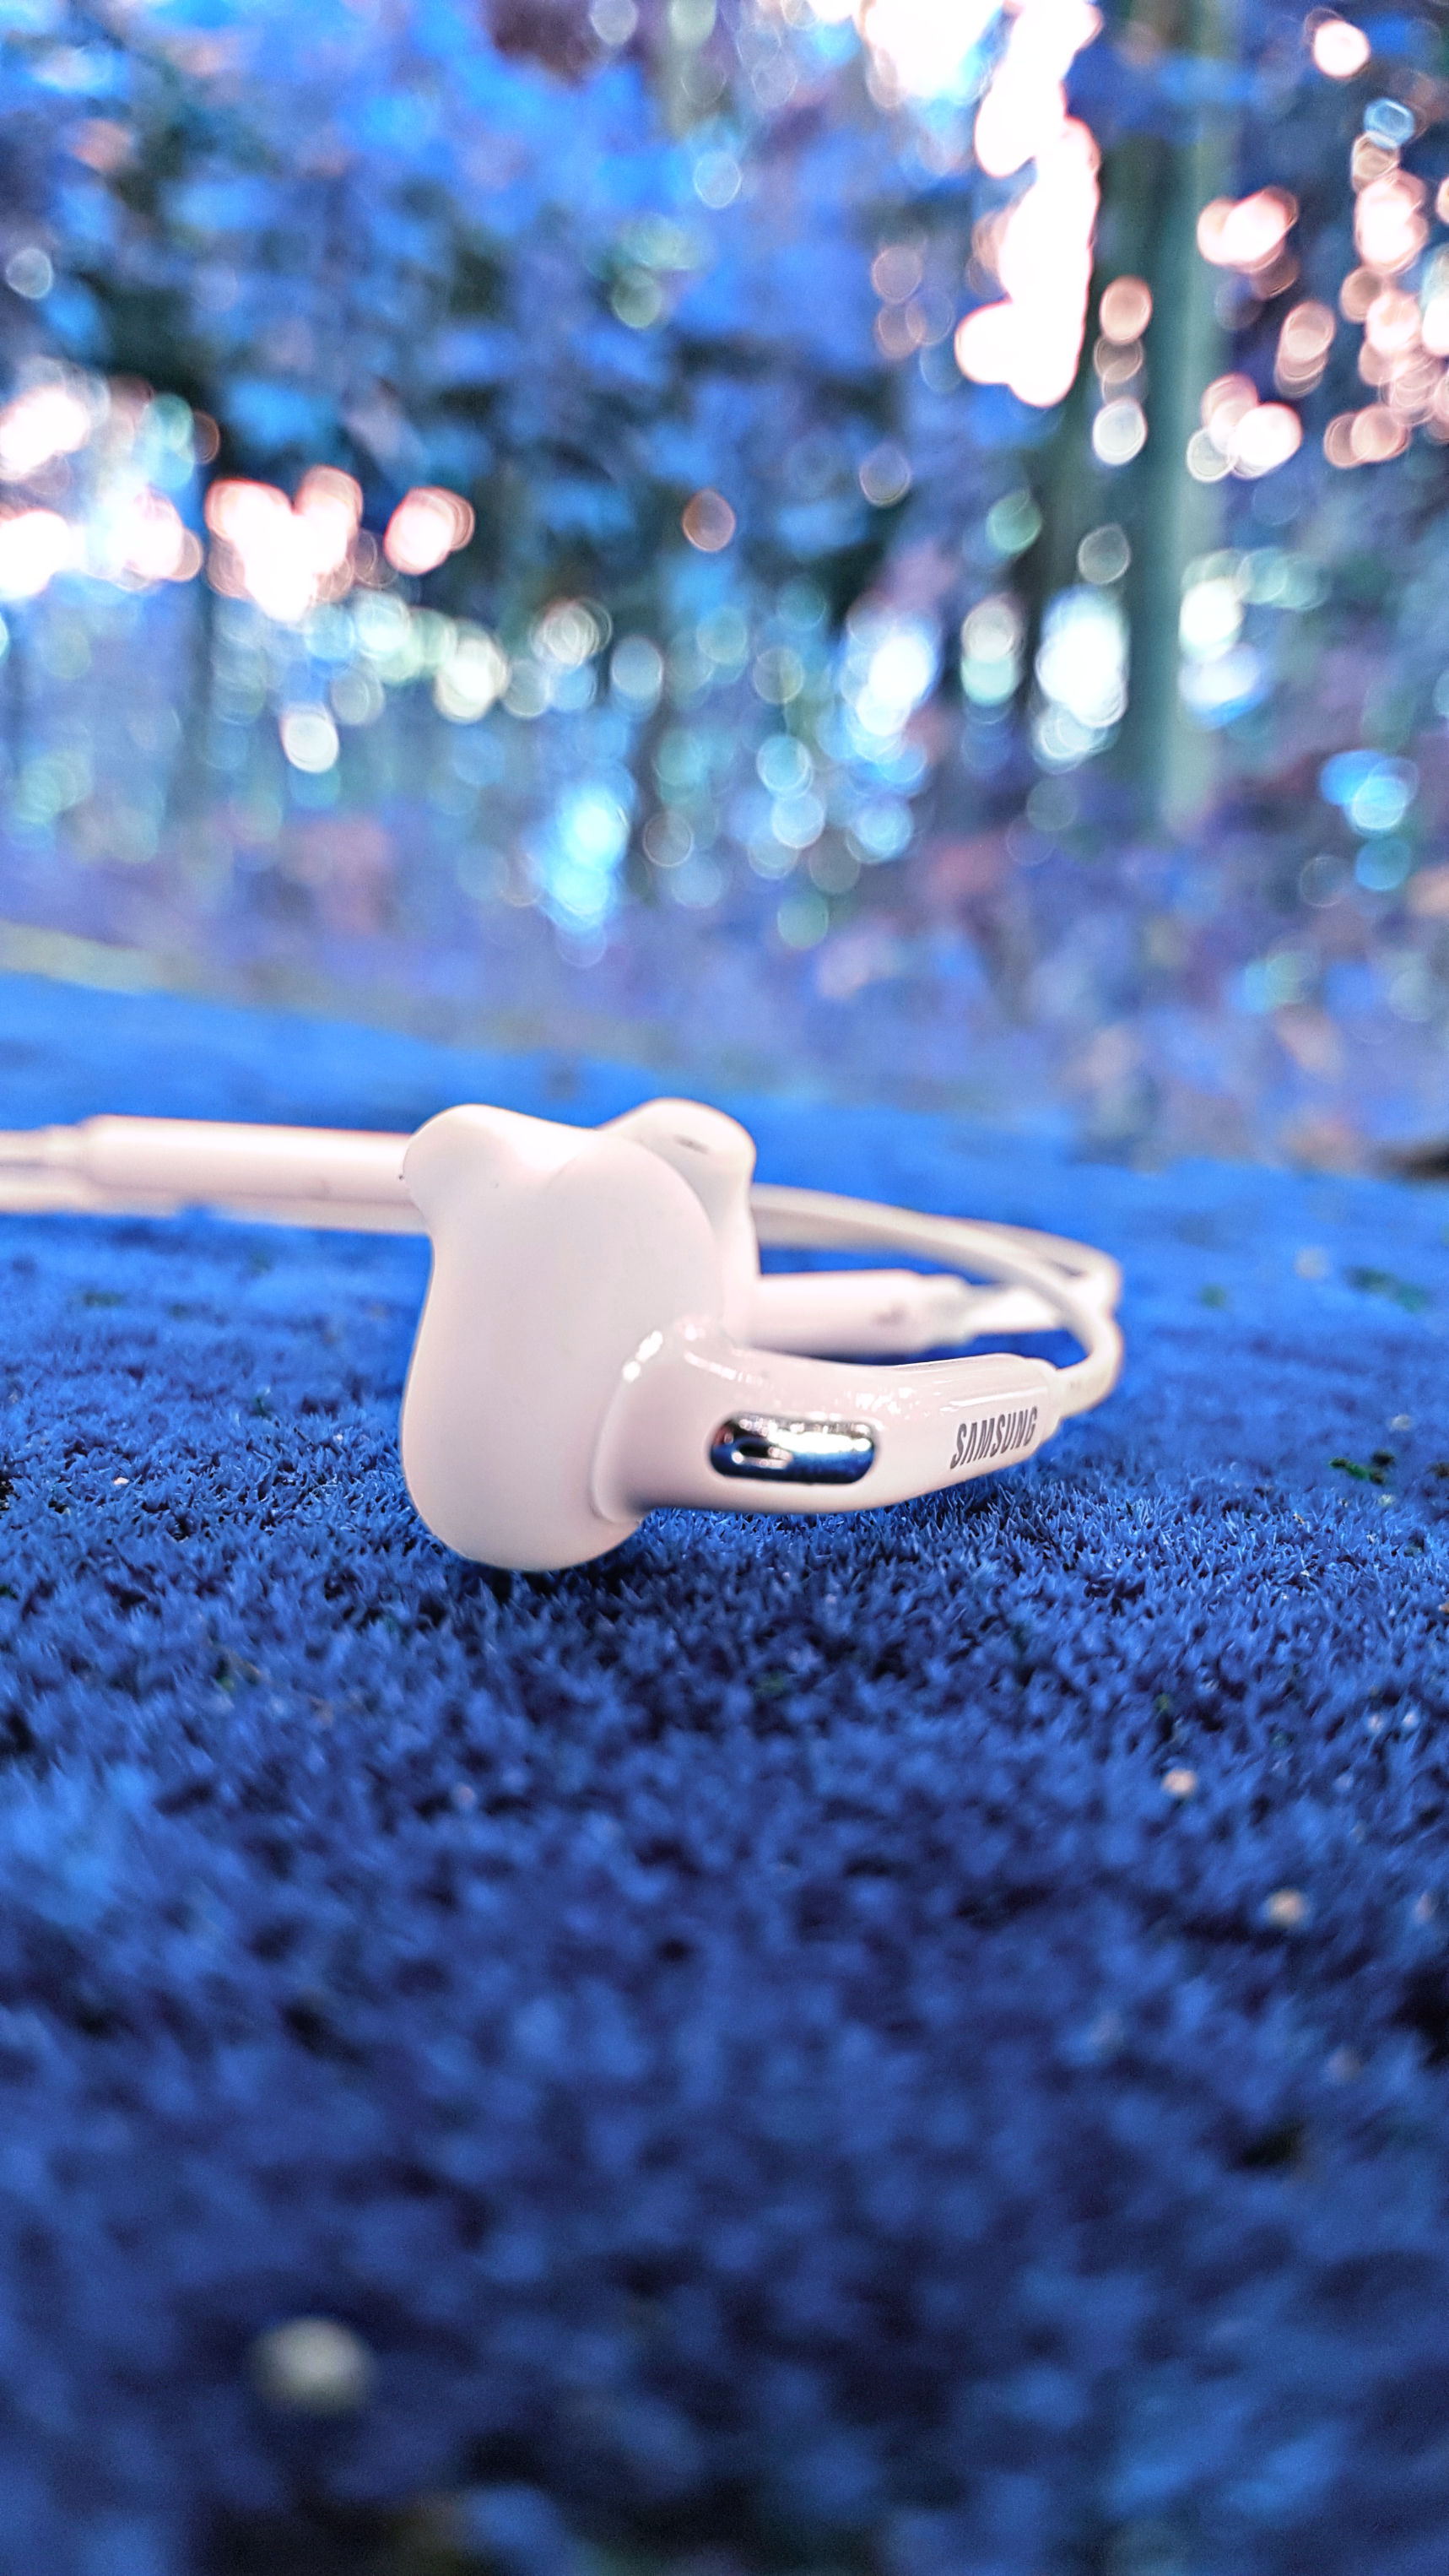 Shallow Focus Photography of White Samsung Earphones, Blur, Travel, Telecommunication, Summer, HQ Photo